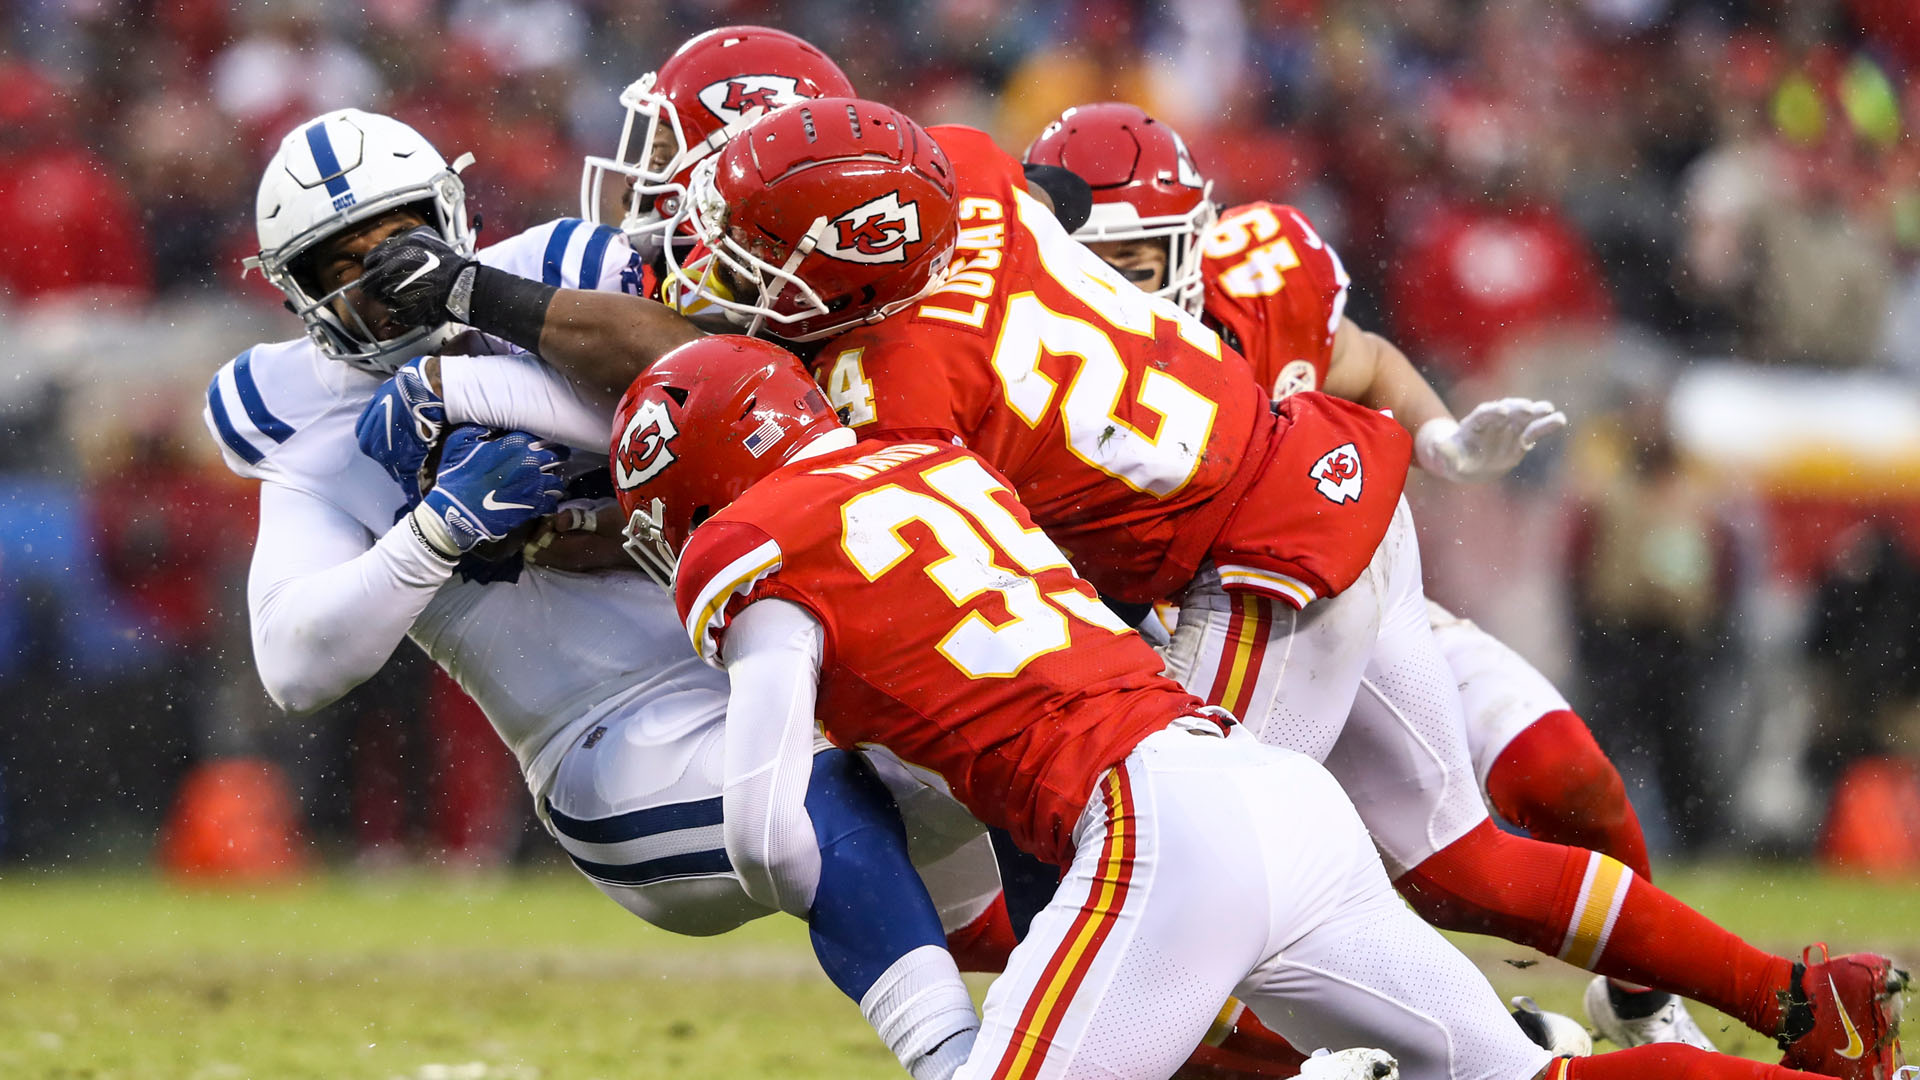 NFL playoffs 2019: Three takeaways from Chiefs' win over the Colts